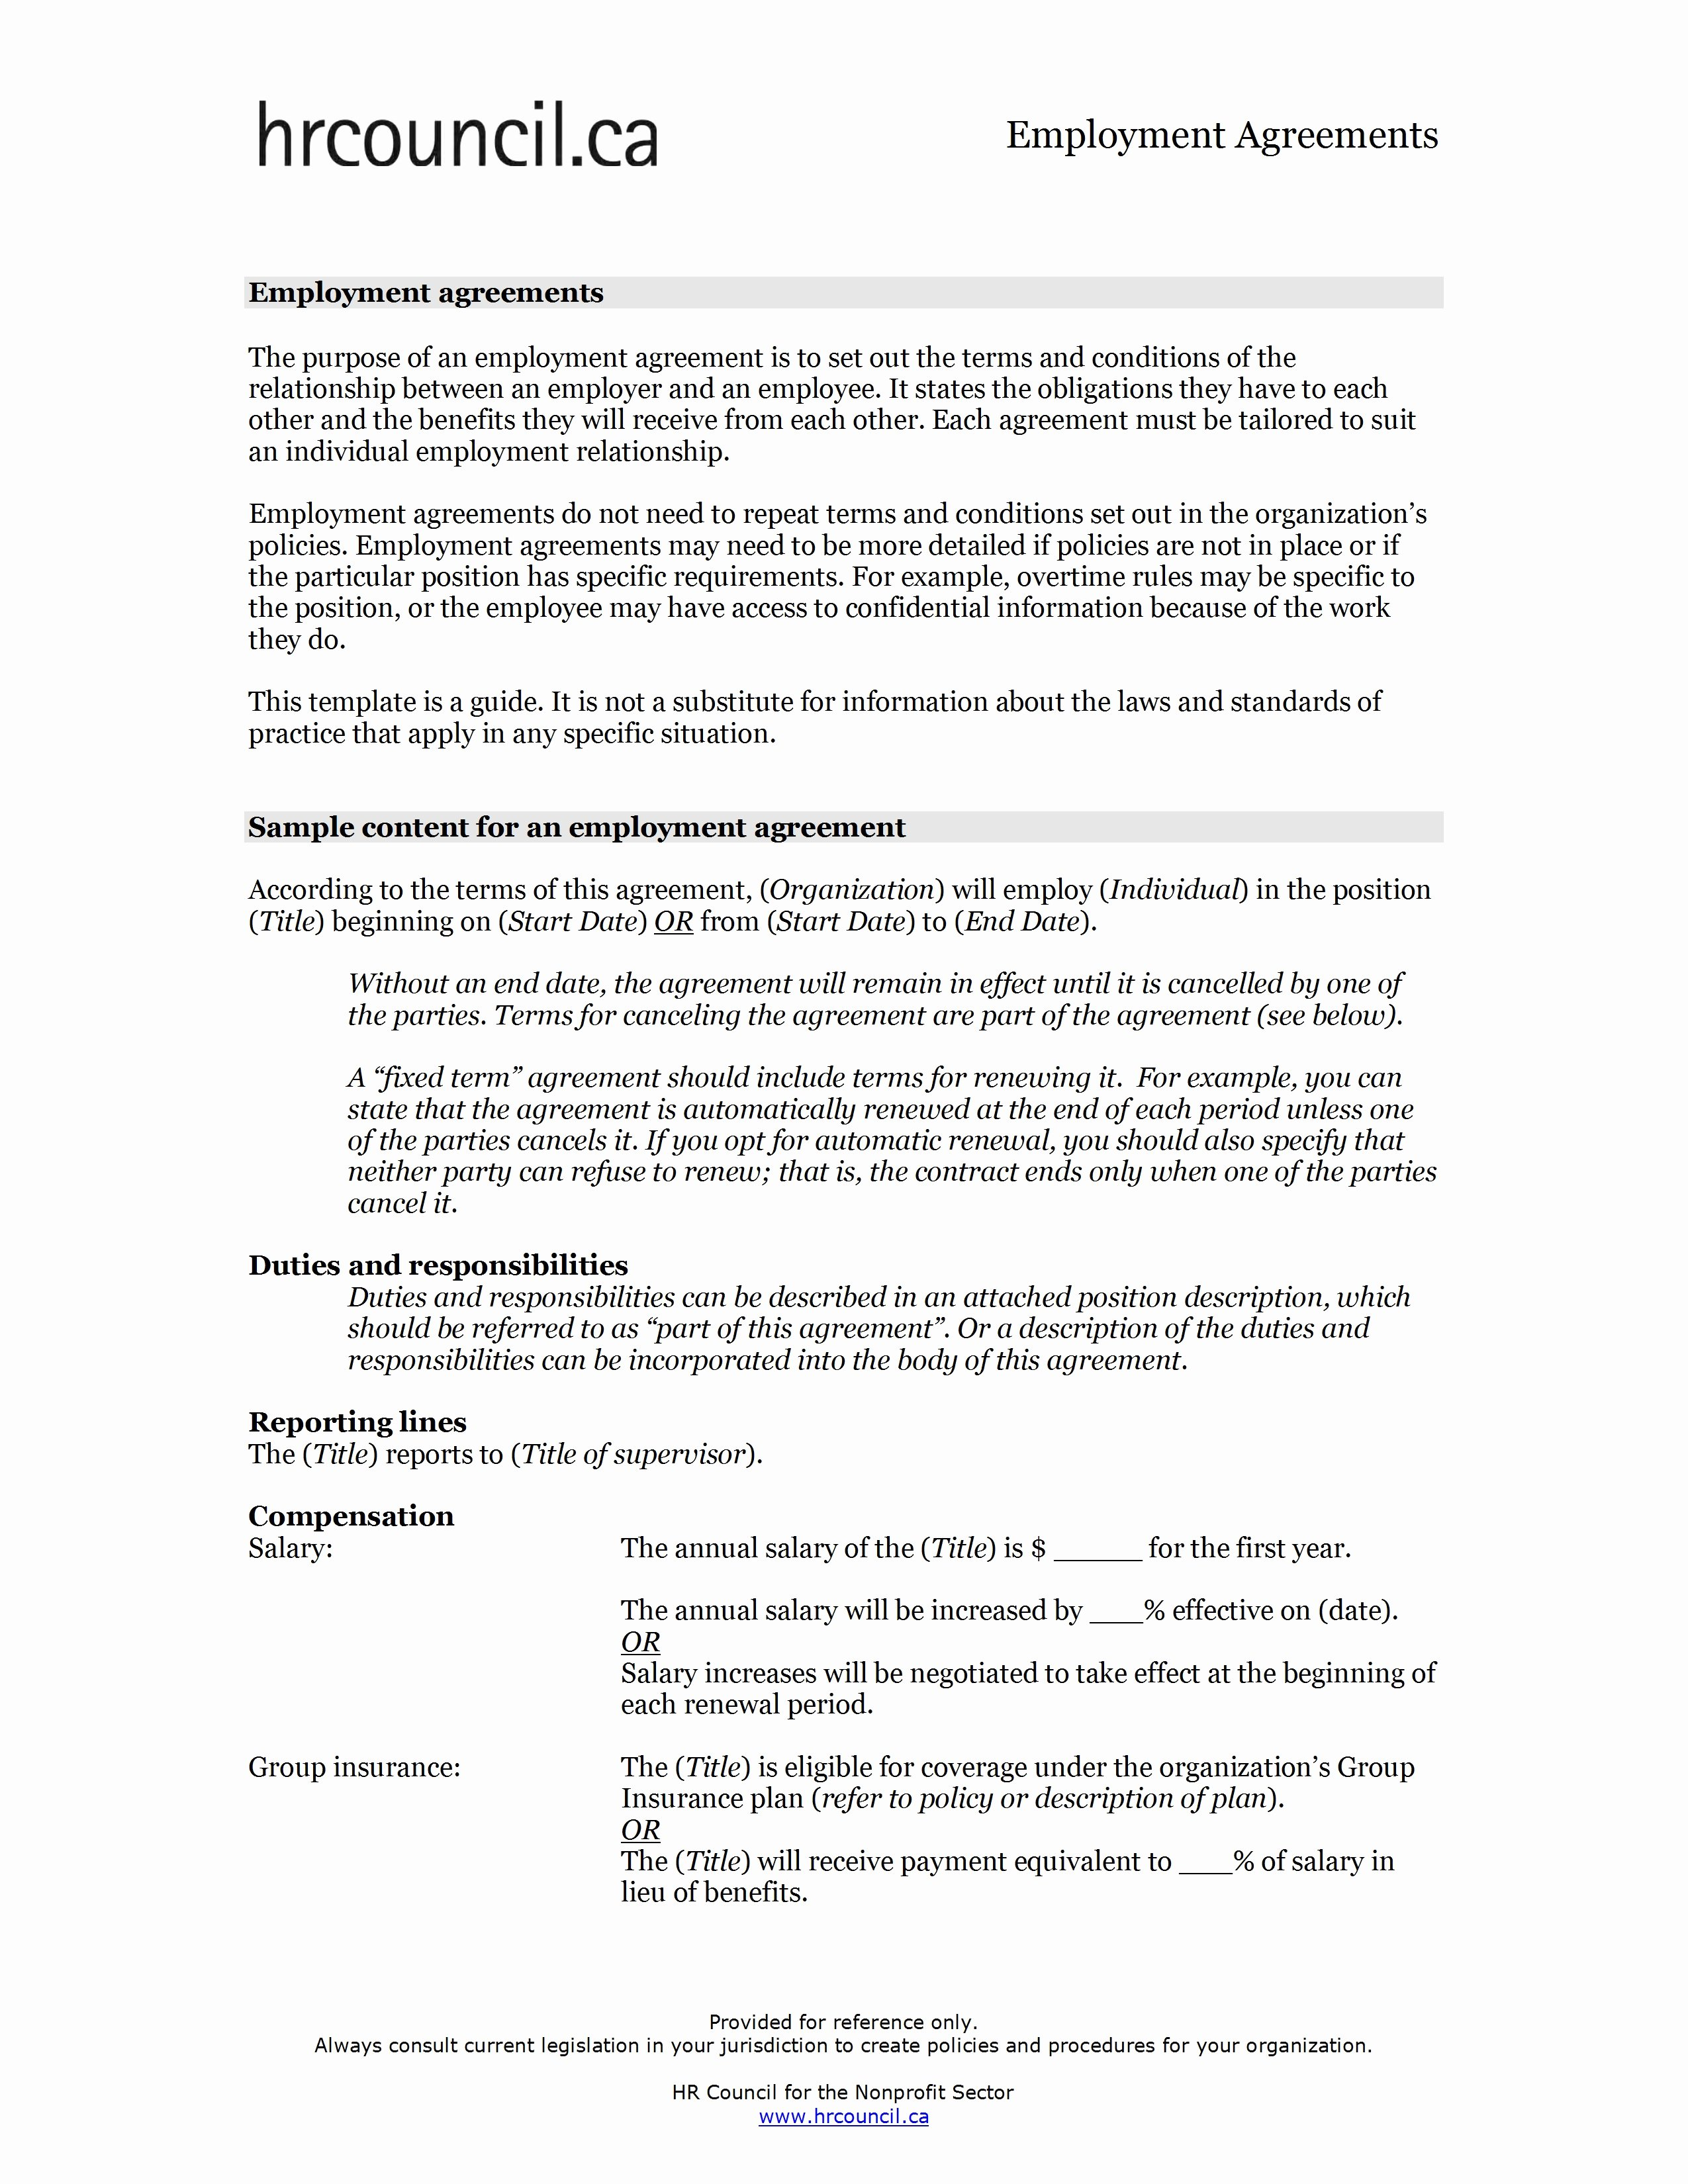 Employment Contract Template Word Fresh Employment Contract Sample